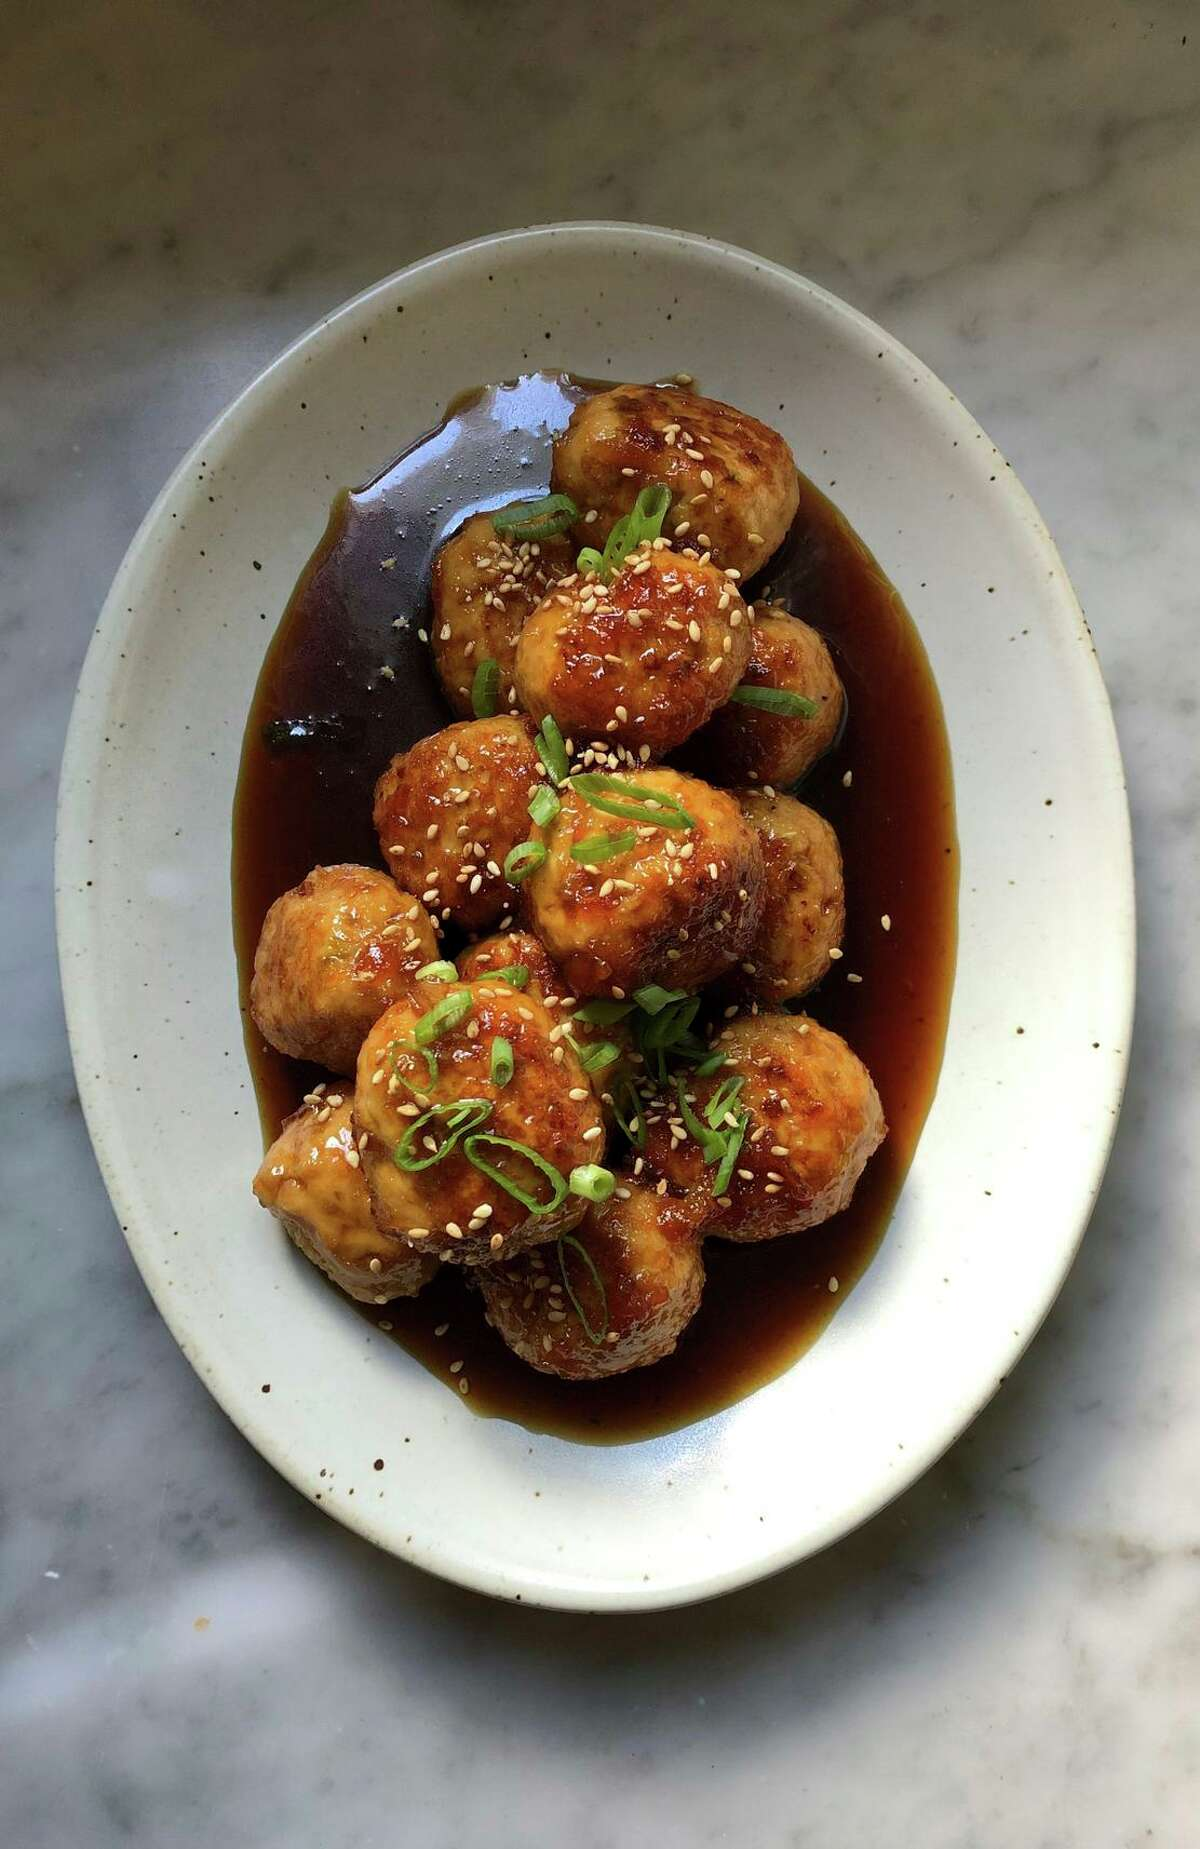 Chicken meatballs are bathed in a four-ingredient glaze that includes light-bodied soy sauce and orange marmalade.